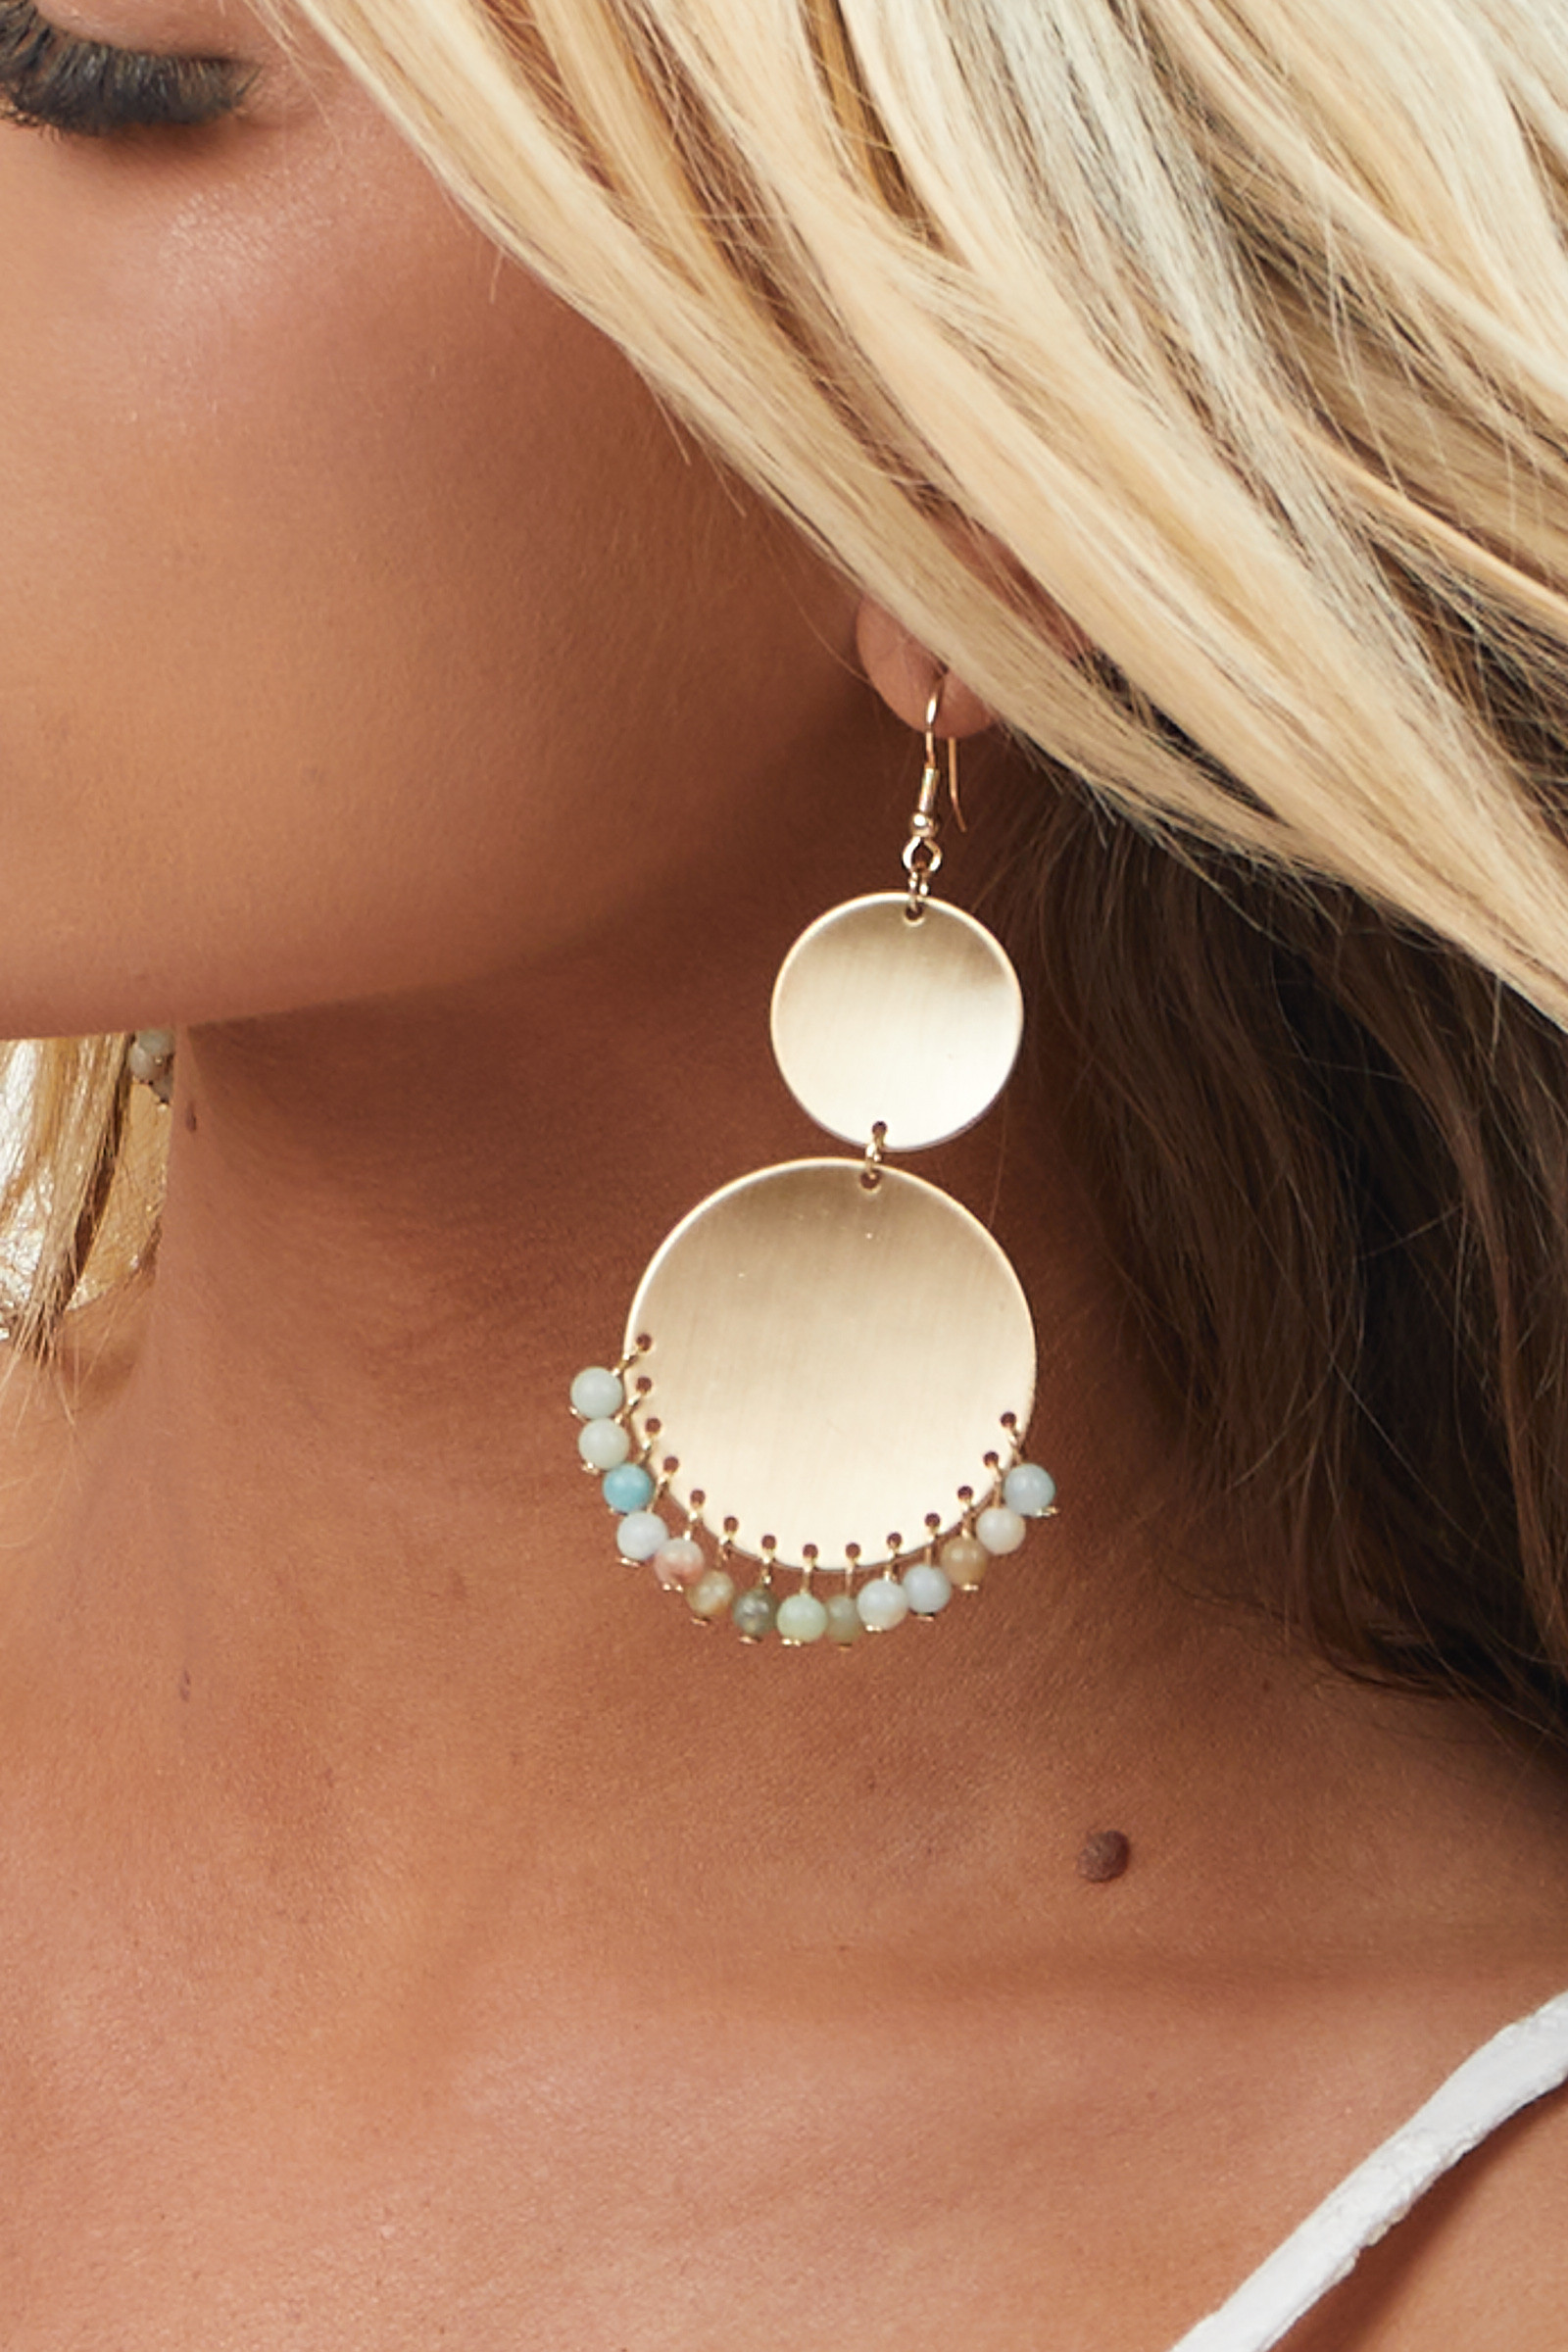 Brushed Gold Layered Circle Earrings with Bead Details